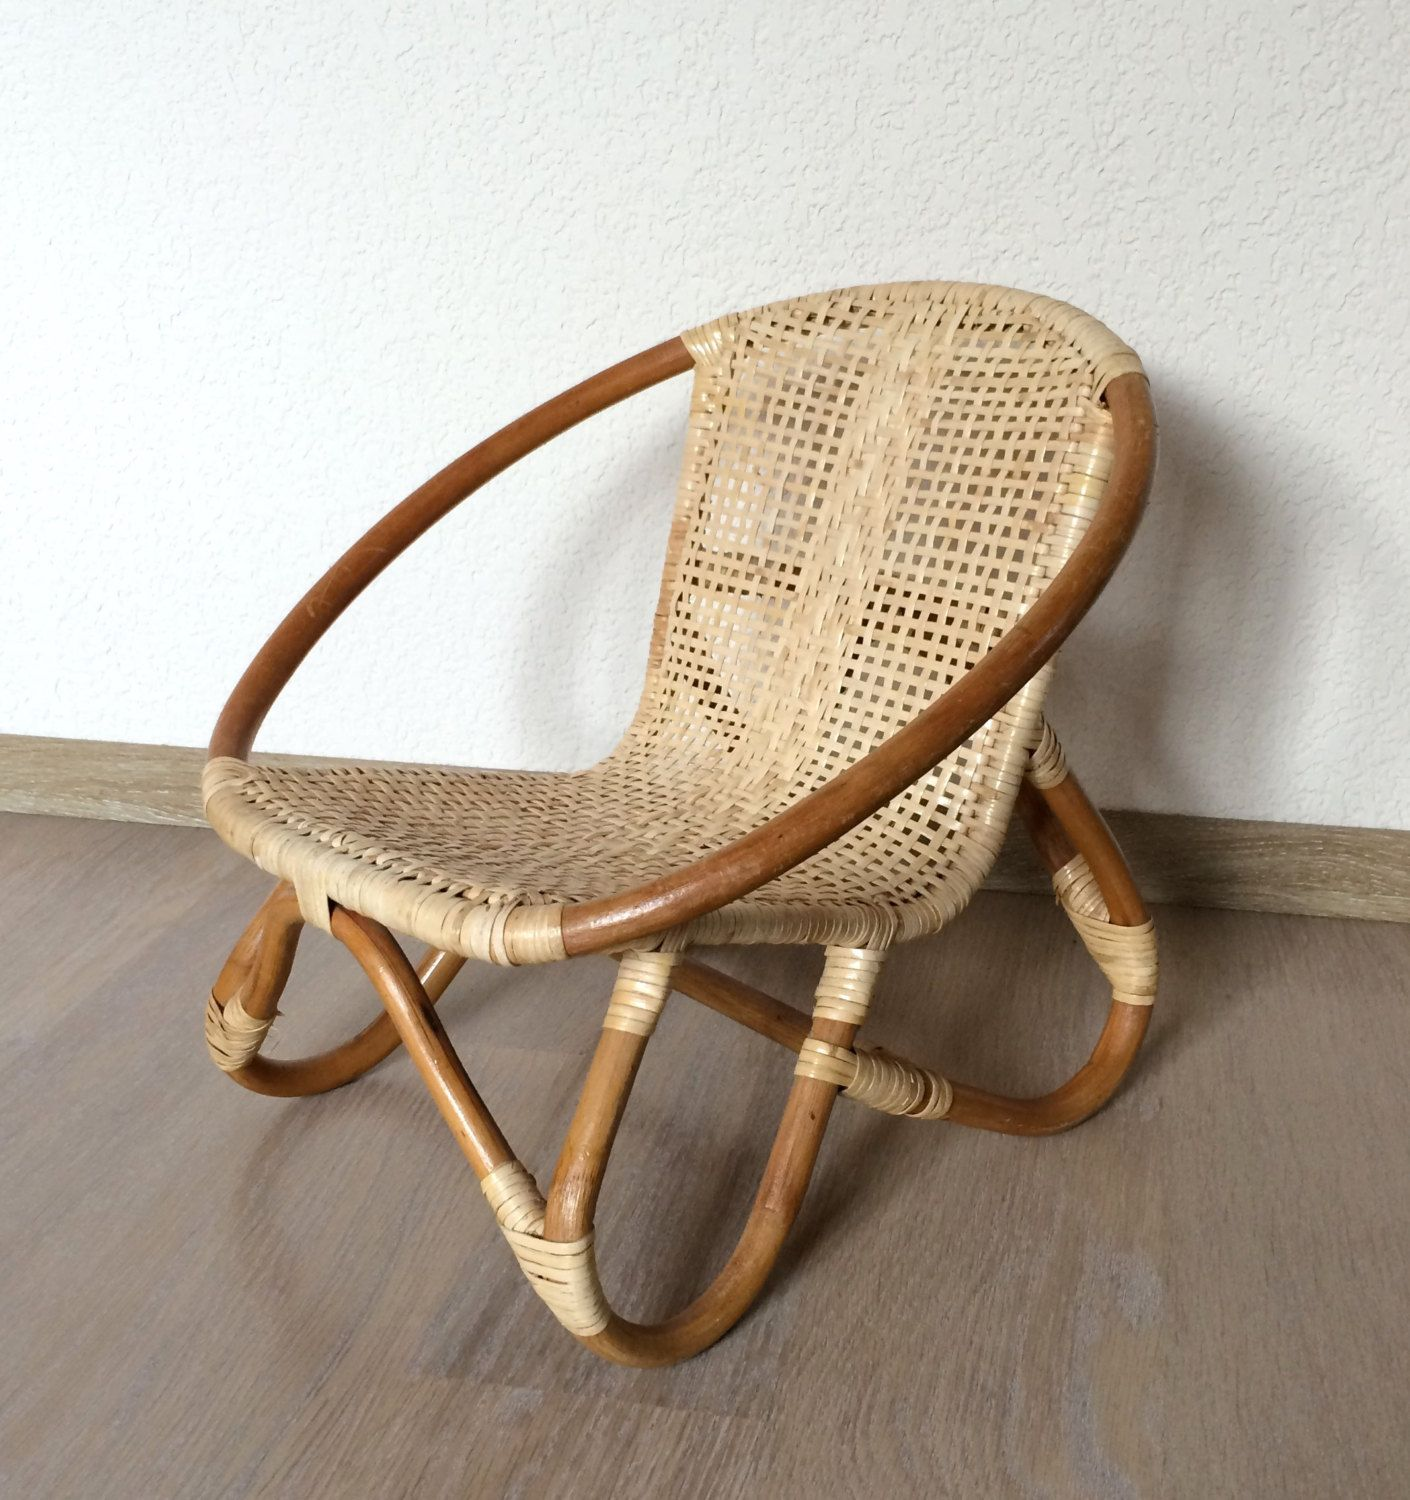 Chair Shop Team And RattanVintagefr Bamboo Children Small wv0mN8n